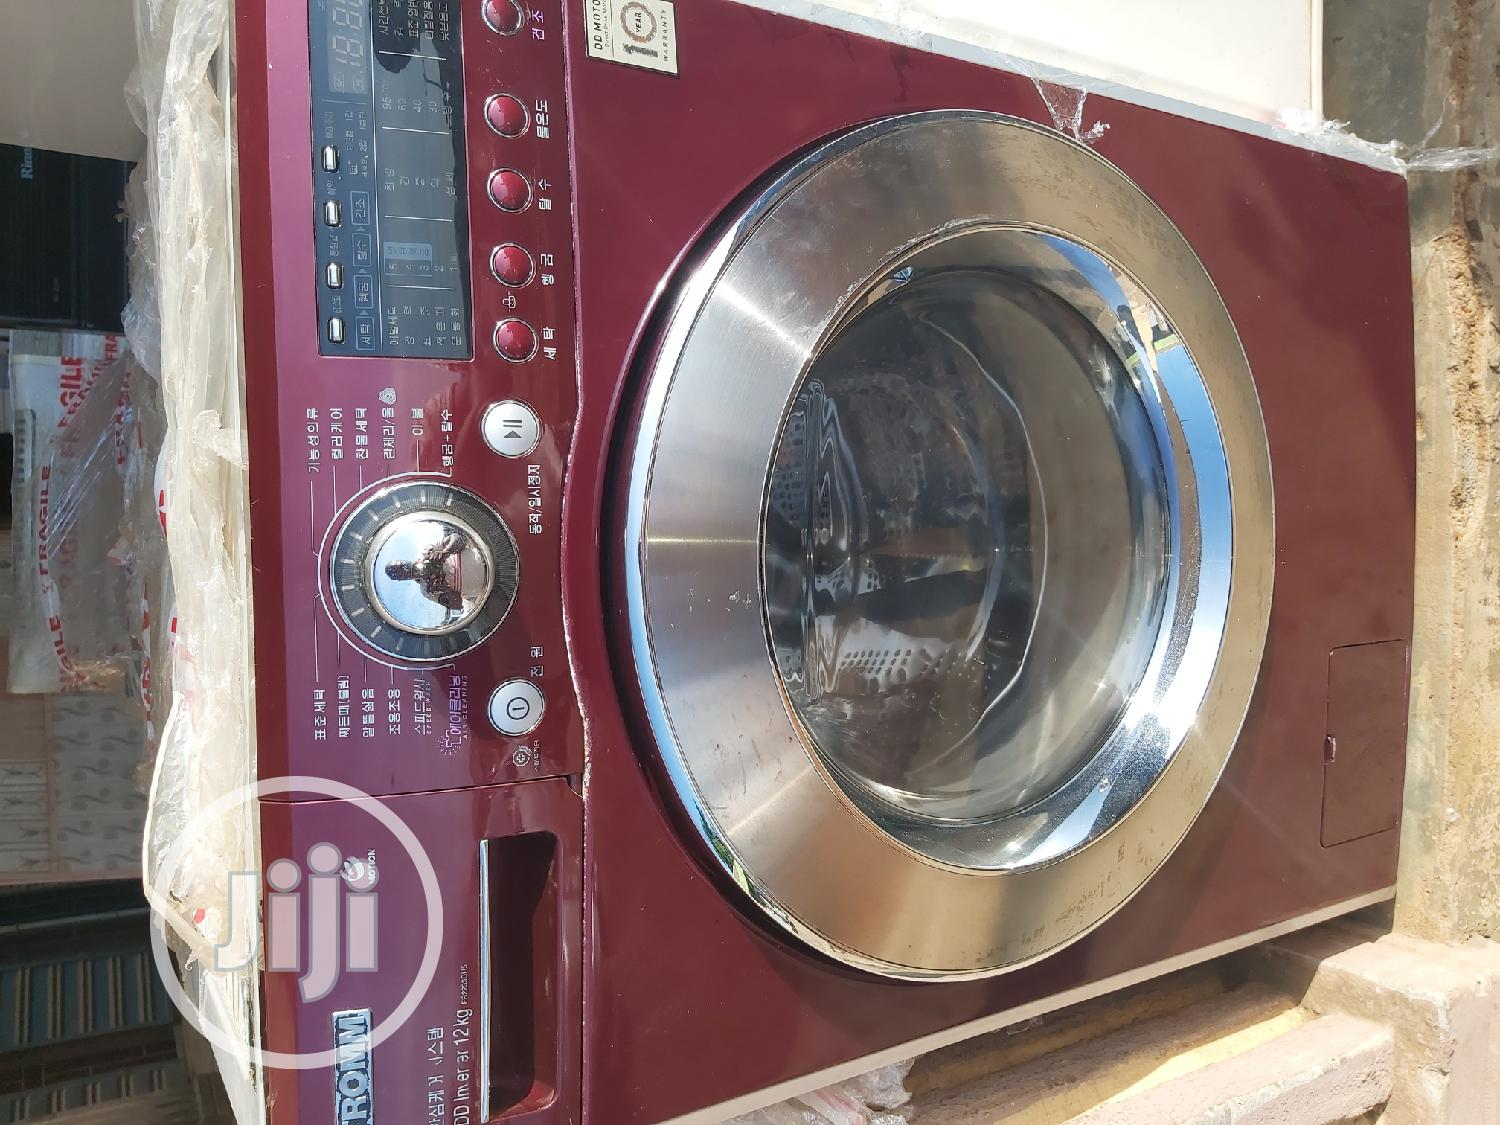 LG Tromm 12kg Washer and Dryer | Home Appliances for sale in Ikorodu, Lagos State, Nigeria